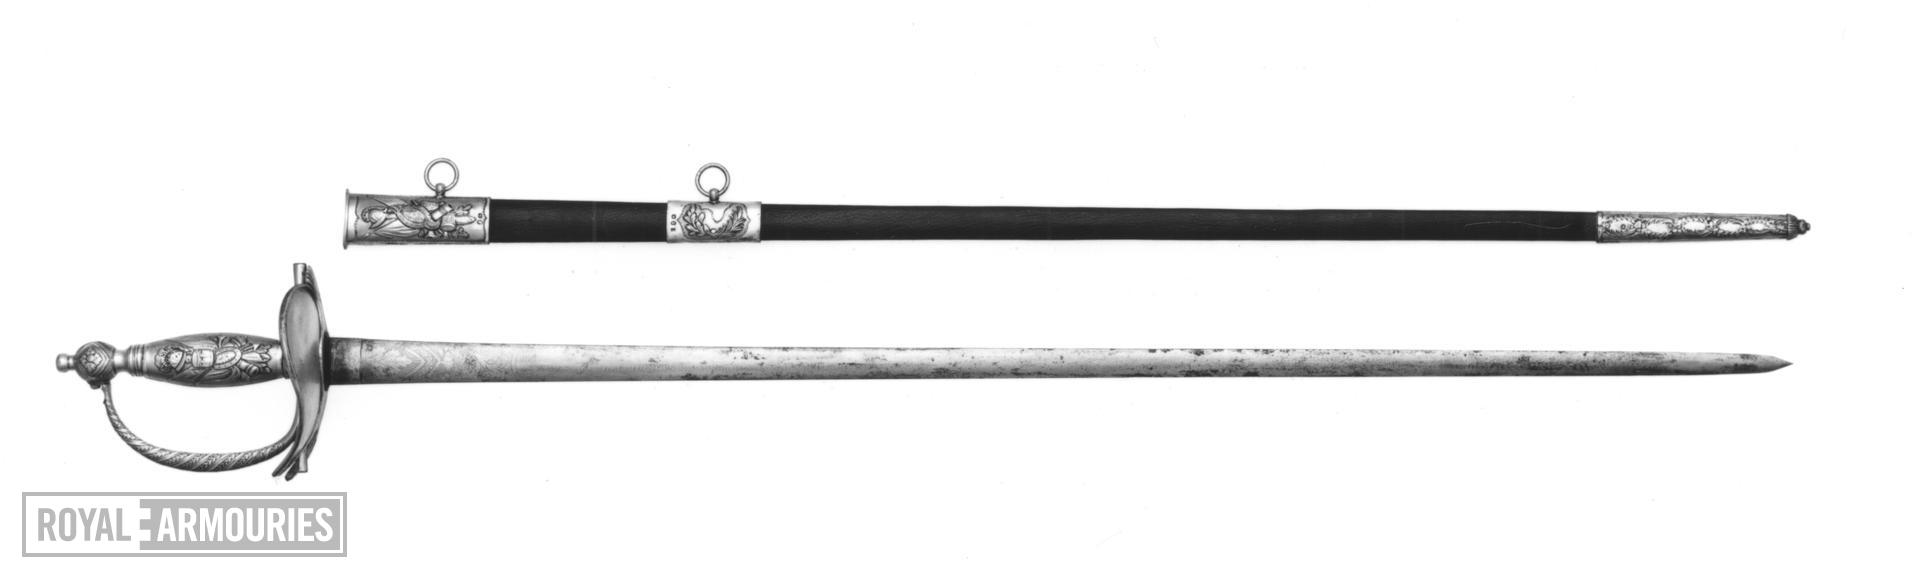 Sword and scabbard Heavy Cavalry Officer's dress sword and scabbard, presented to Lt Col. J.J. Smith of the 4th Regiment of Loyal London Volunteers, 1810; Pattern 1796 with solid silver grip and silver-gilt boatshell, hallmarks include the London assay marks for 1809/1810.